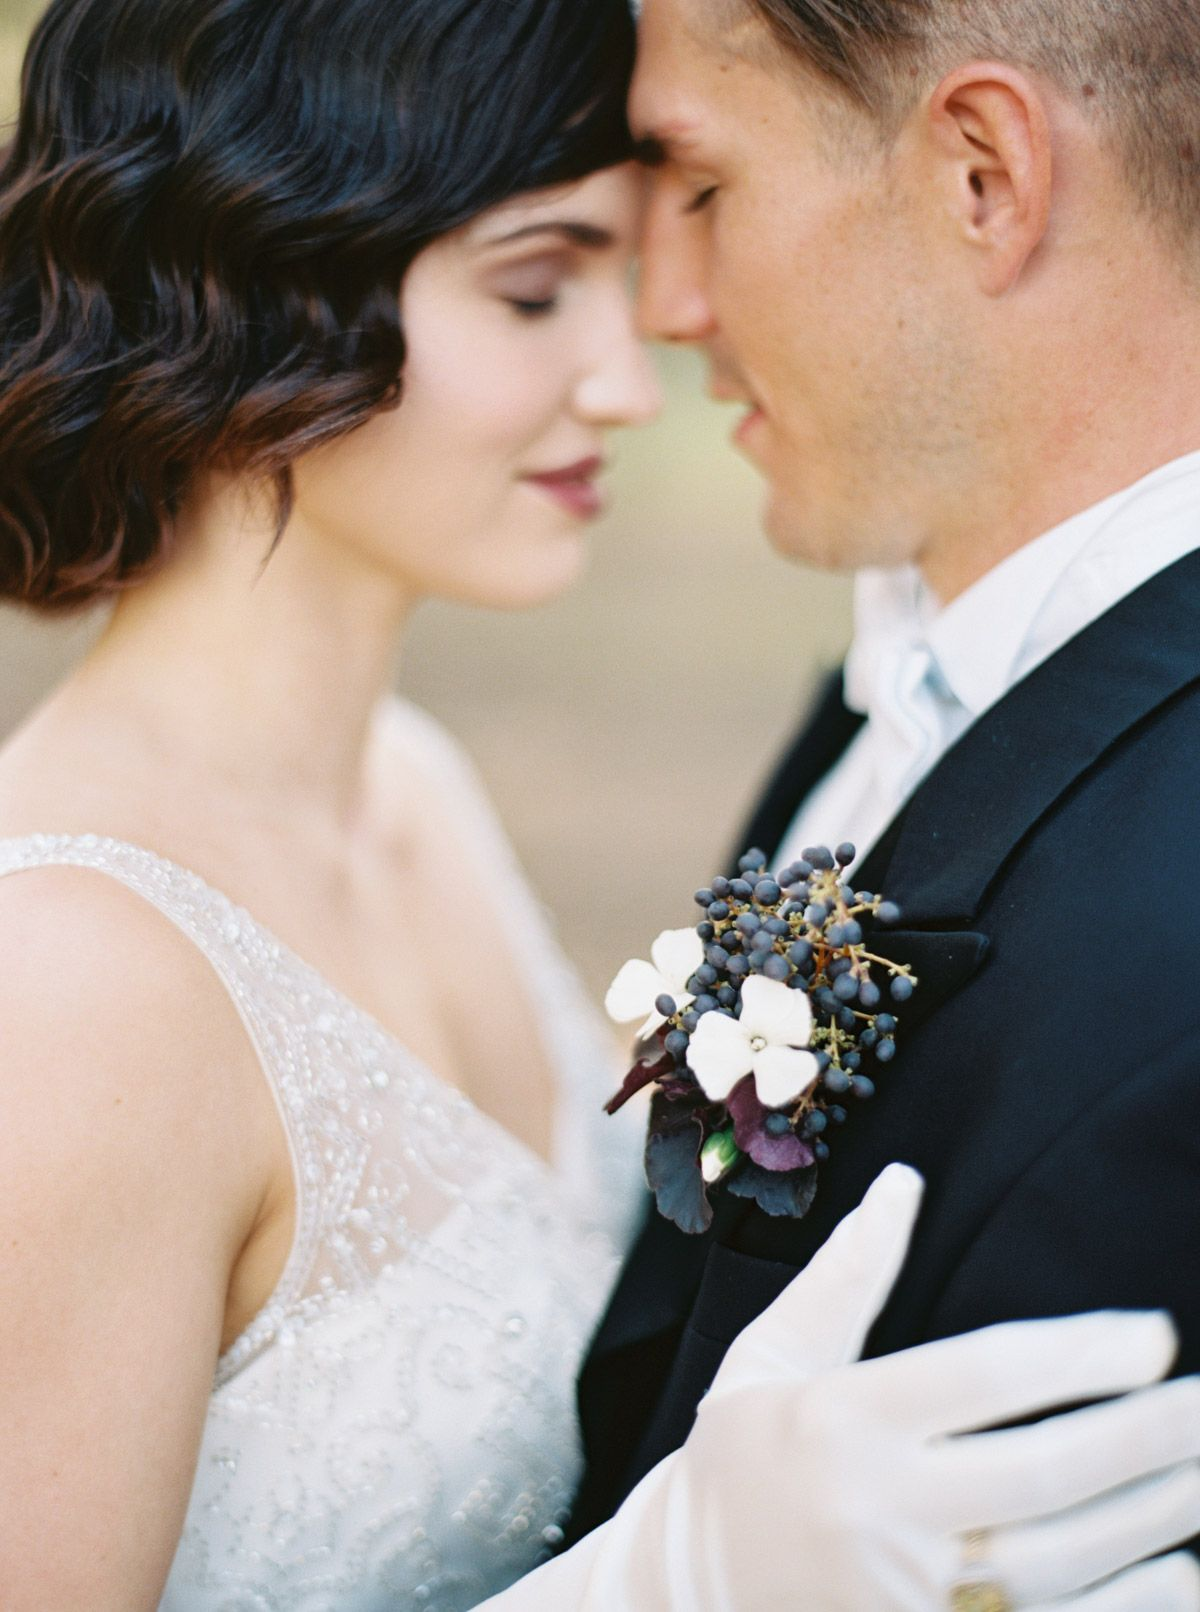 1920's wedding Inspiration styled and shot by Katie Grant in Perth, Australia . Bridal Accessories by Bride La Boheme #bridalaccessories #bridelaboheme #weddingheadpieces ( Instagram @bridelaboheme)